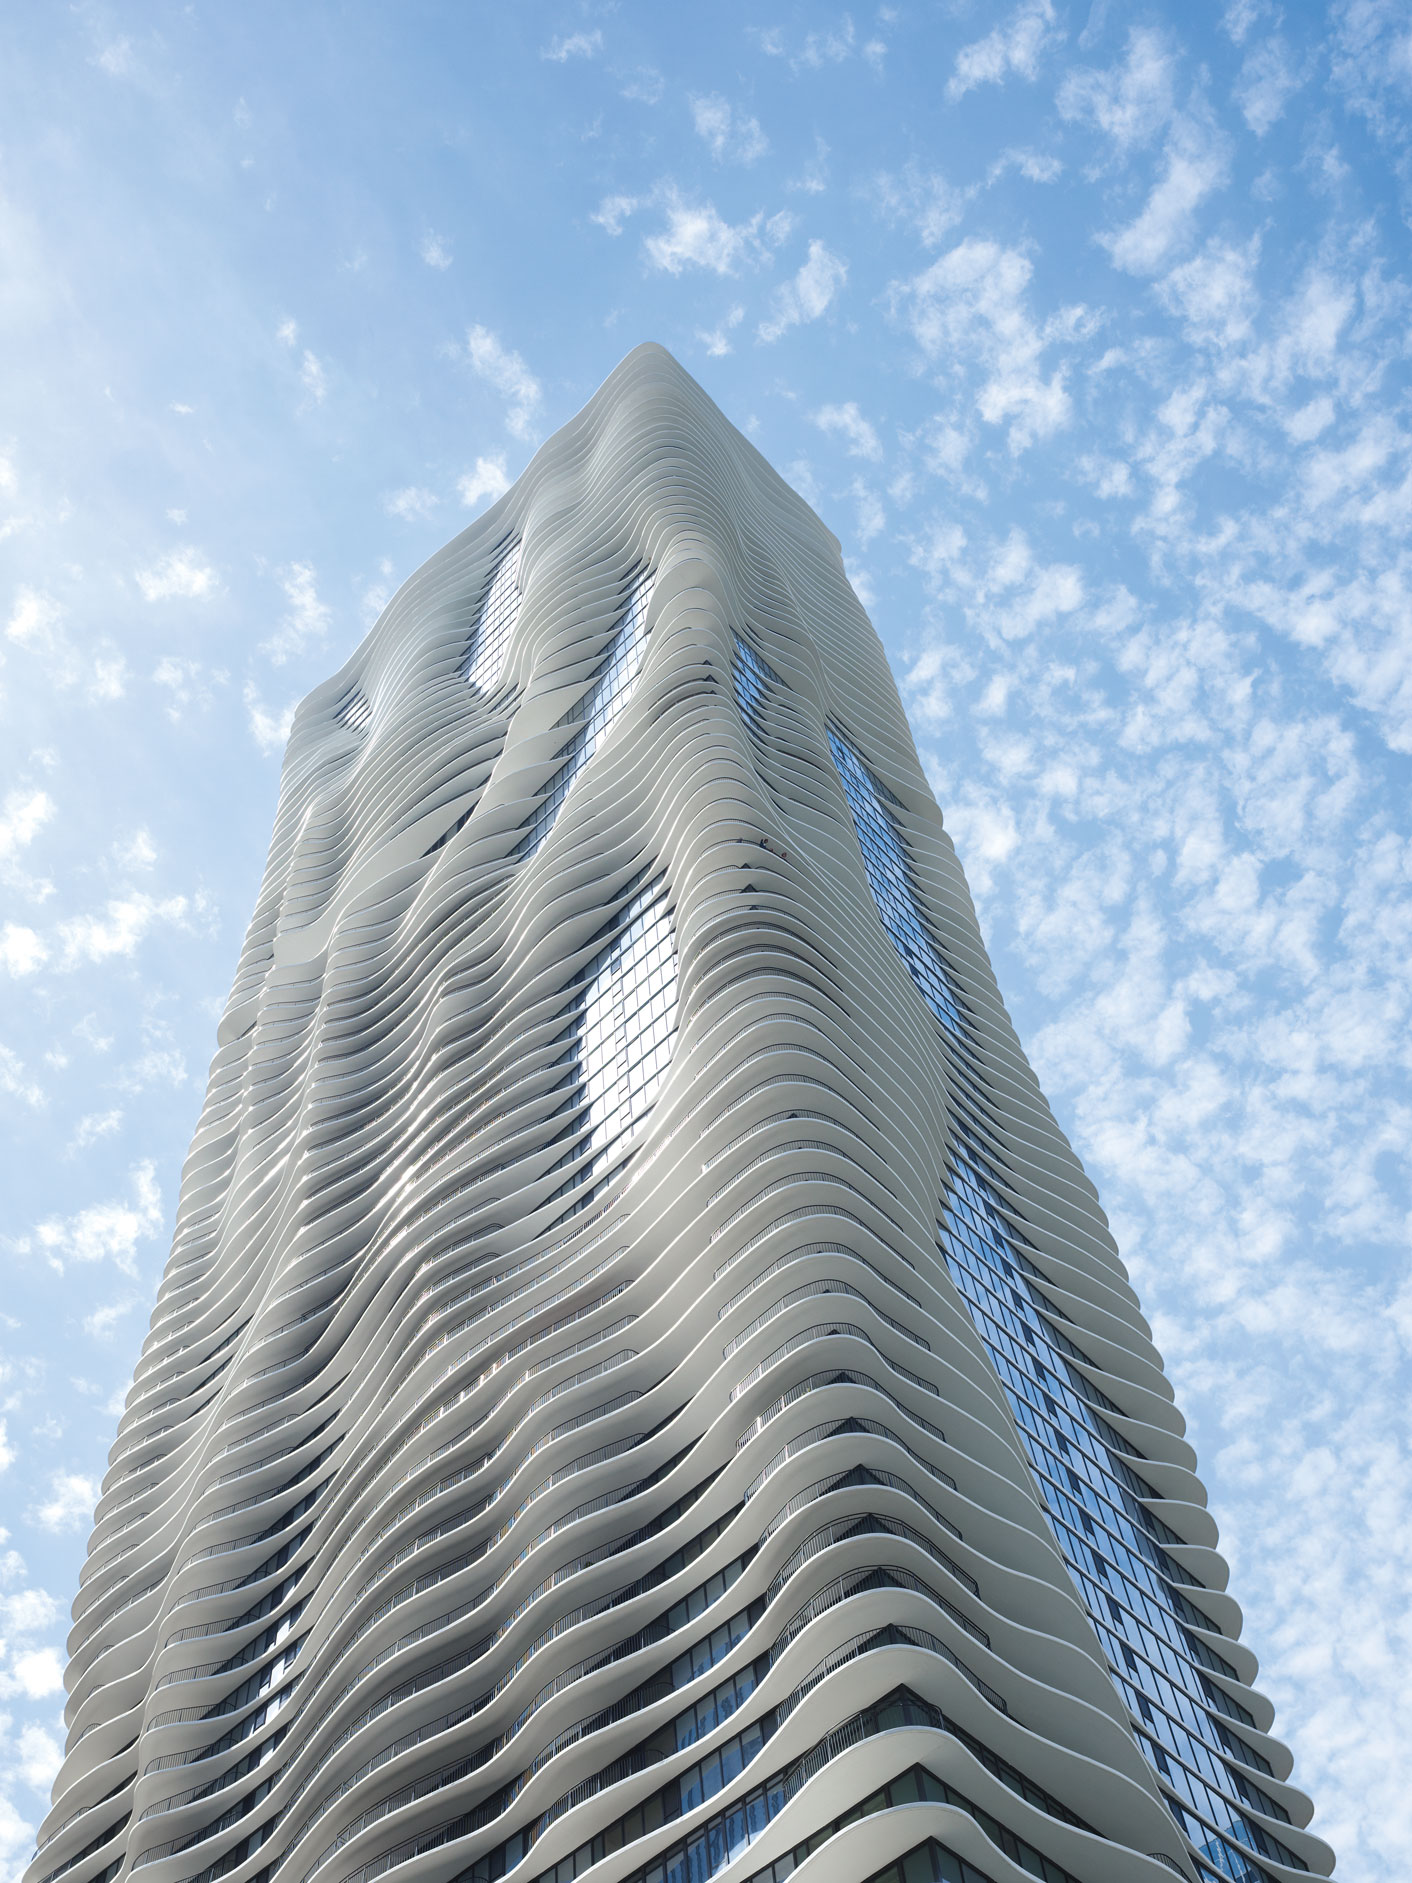 Studio Gang, Aqua Tower, Chicago, Illinois, USA, 2010.  The Aqua Tower's floor plates were shaped to give residents sight lines to specific Chicago landmarks as well as to provide solar shading and help break up the wind. The cantilevered, curvilinear slabs produce an elevation with variegated light and shadow as well as the appearance of undulating movement when seen from below. Steve Hall © Hall + Merrick